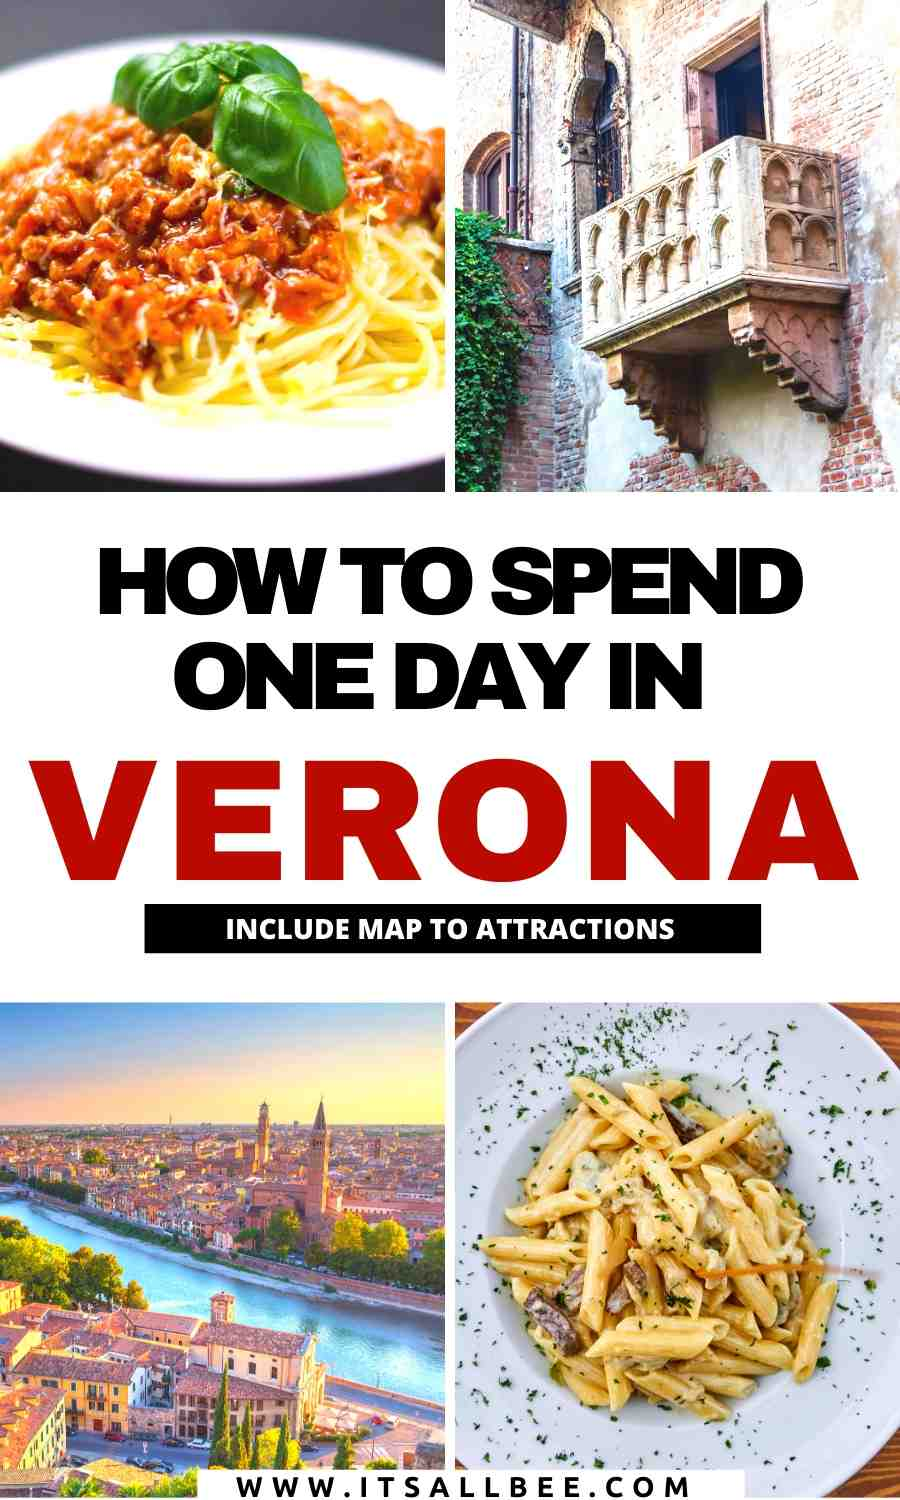 The Perfect One Day Verona Itinerary - things to do in verona in one day